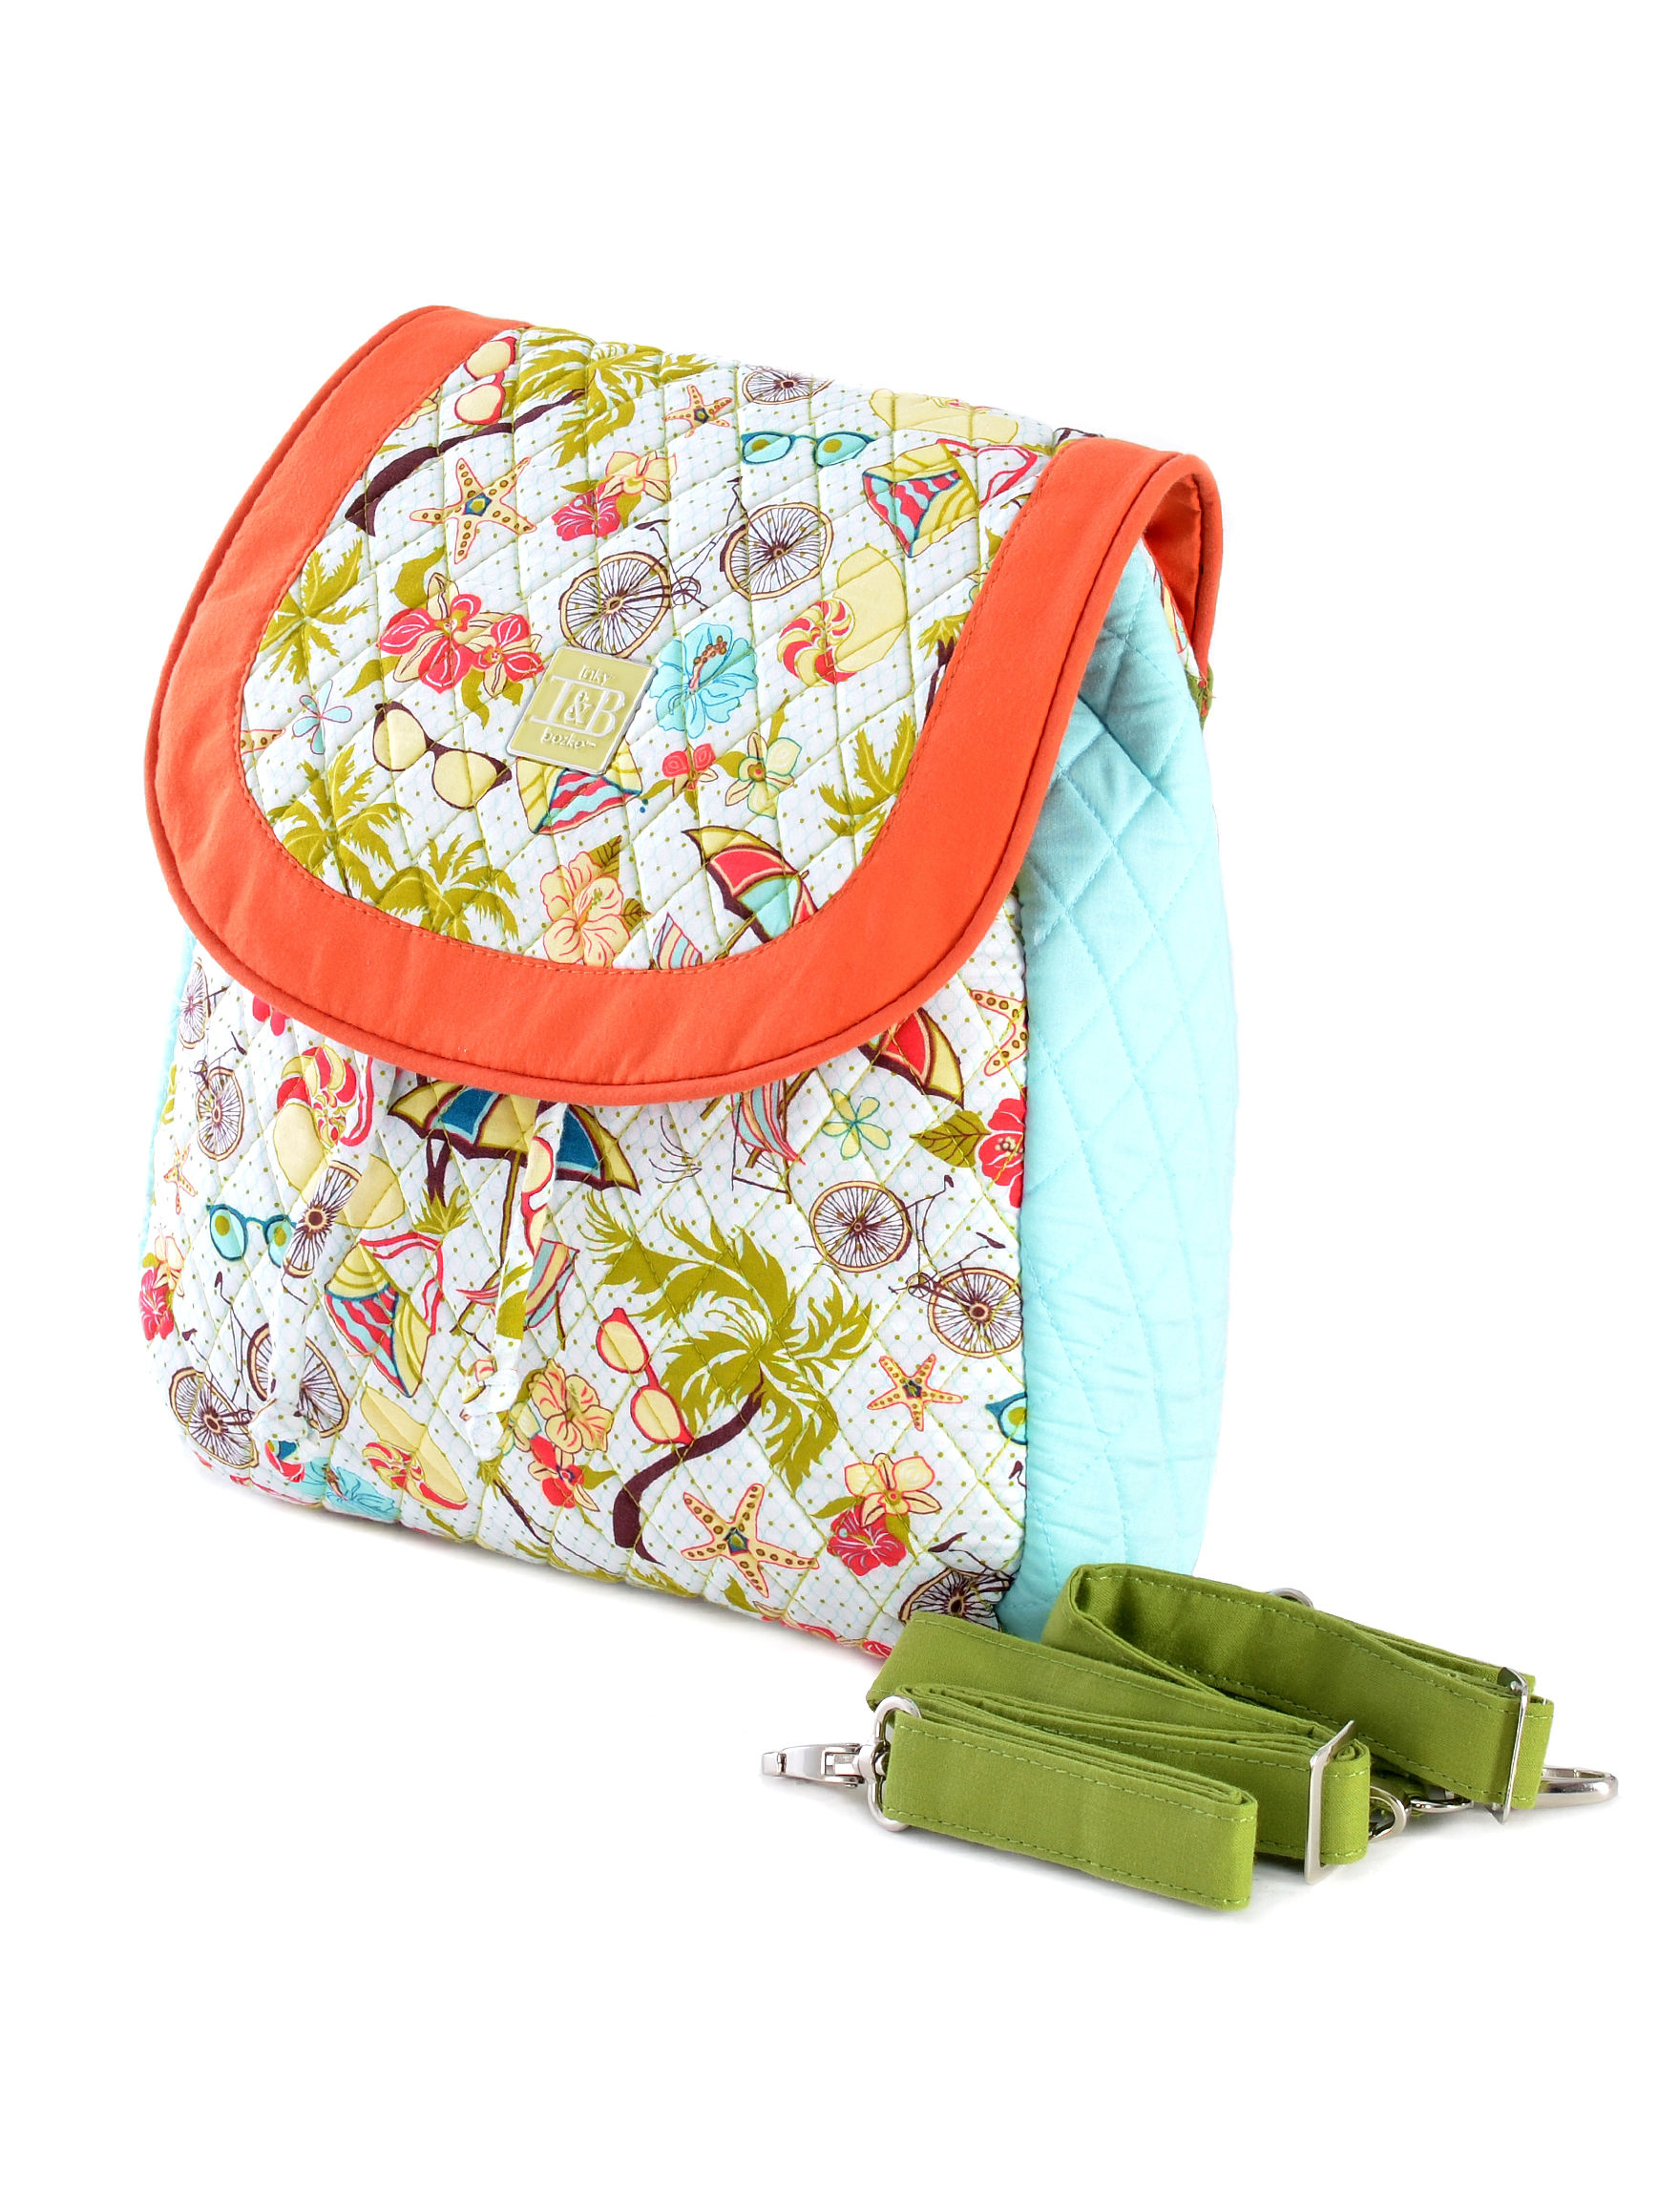 Inky & Bozko Orange Lunch Boxes & Bags Bookbags & Backpacks